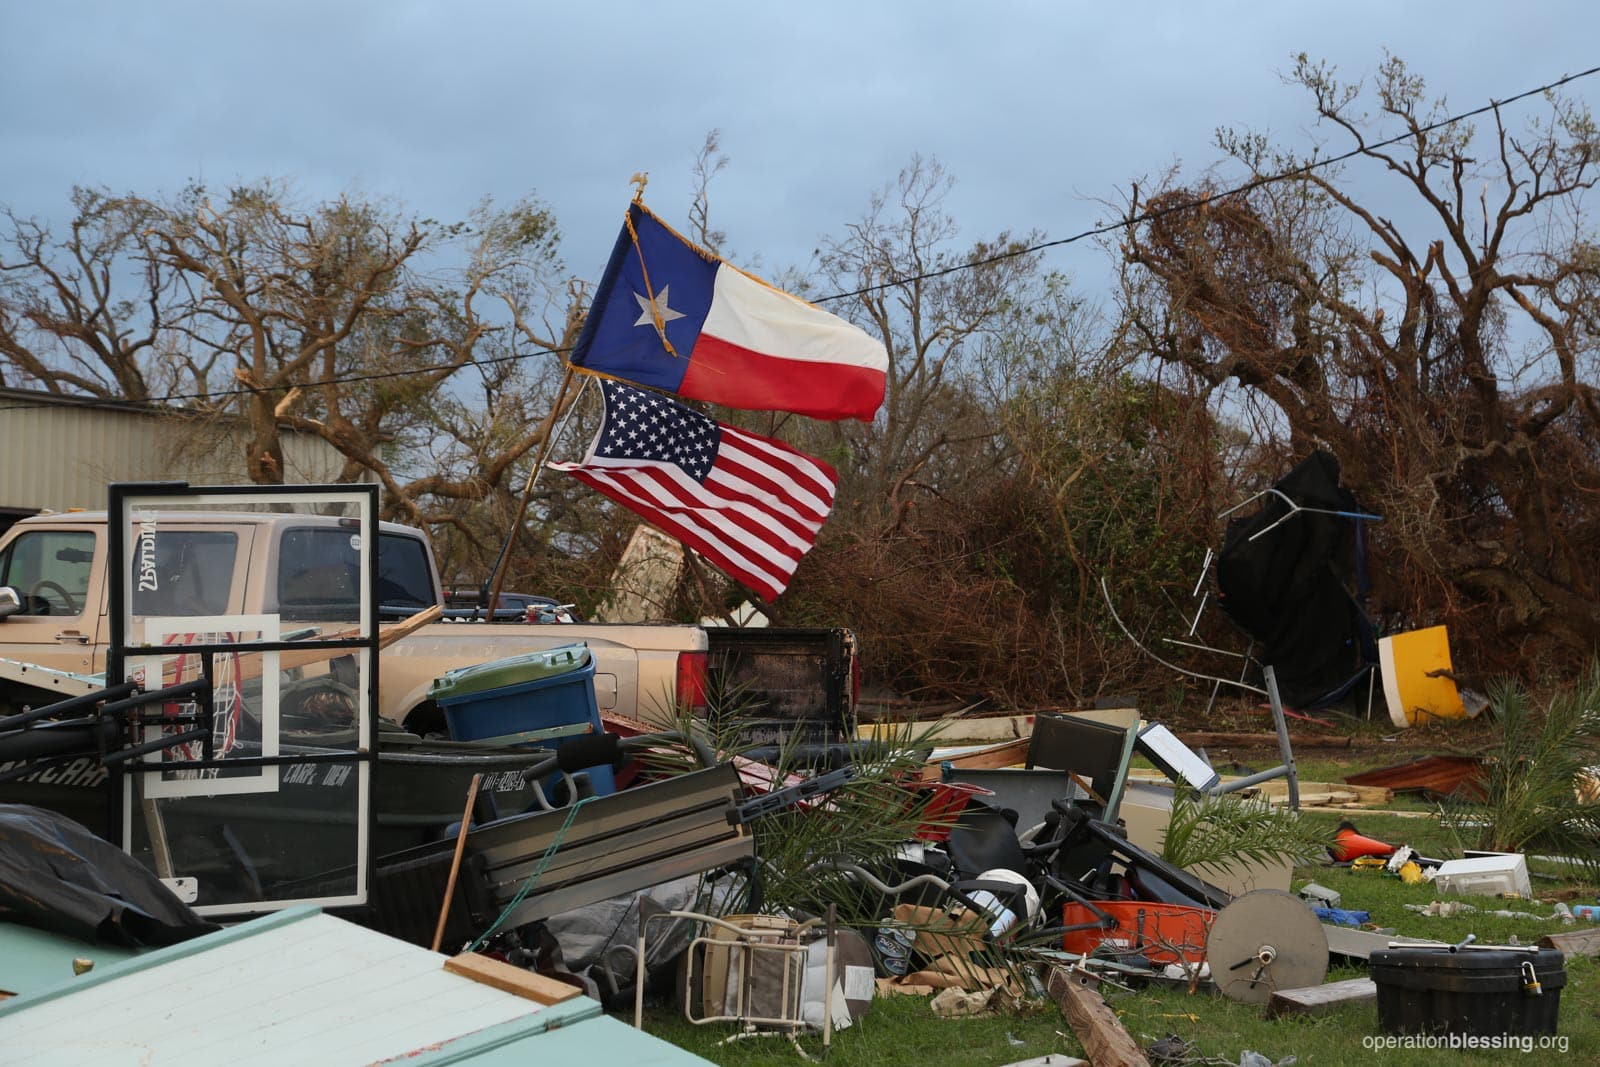 American and Texan flags fly from the back of a pickup truck amidst the devastation of Harvey, as Operation Blessing begins their disaster relief.